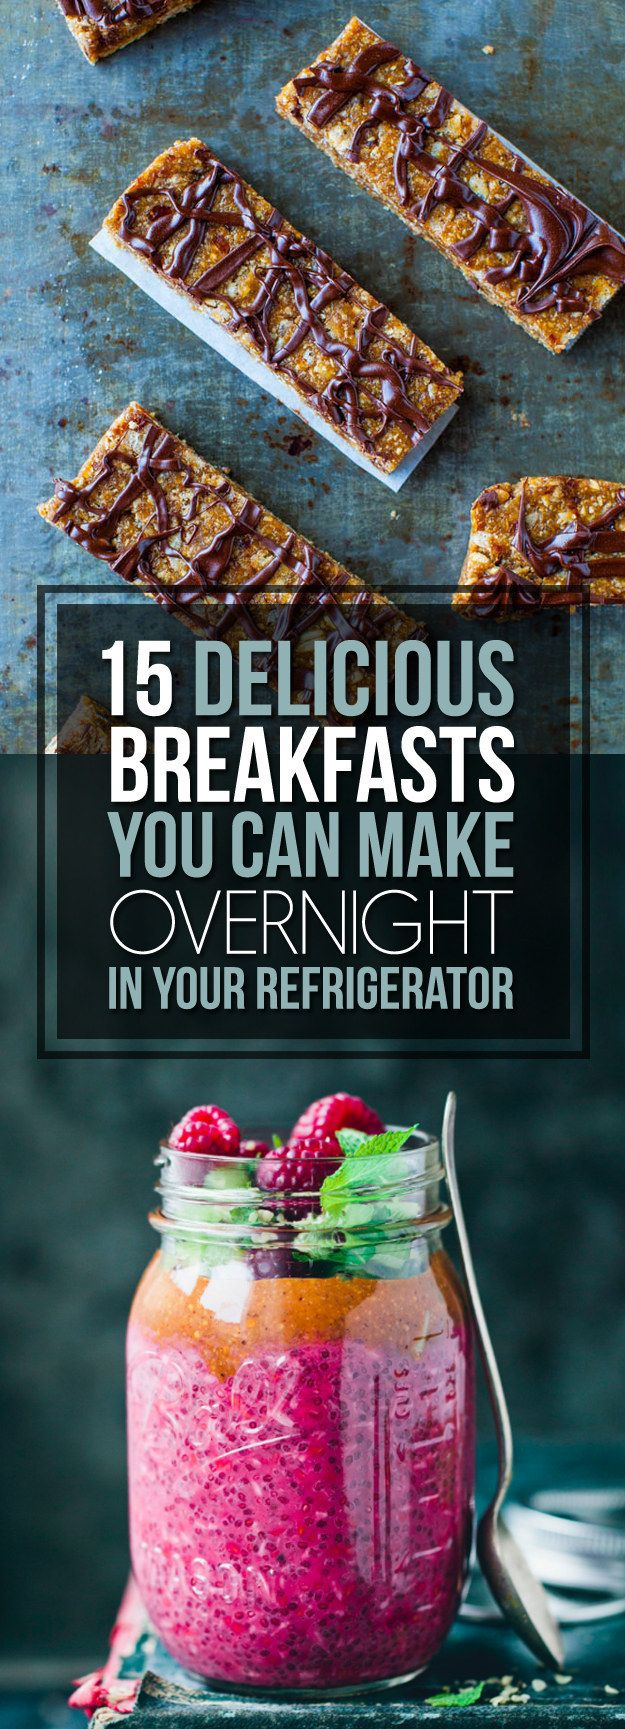 15 Insanely Delicious Overnight Breakfasts That Are Made While You Sleep | healthy recipe ideas Healthy Recipes | #breakfast #recipes #brunch #healthy #recipe